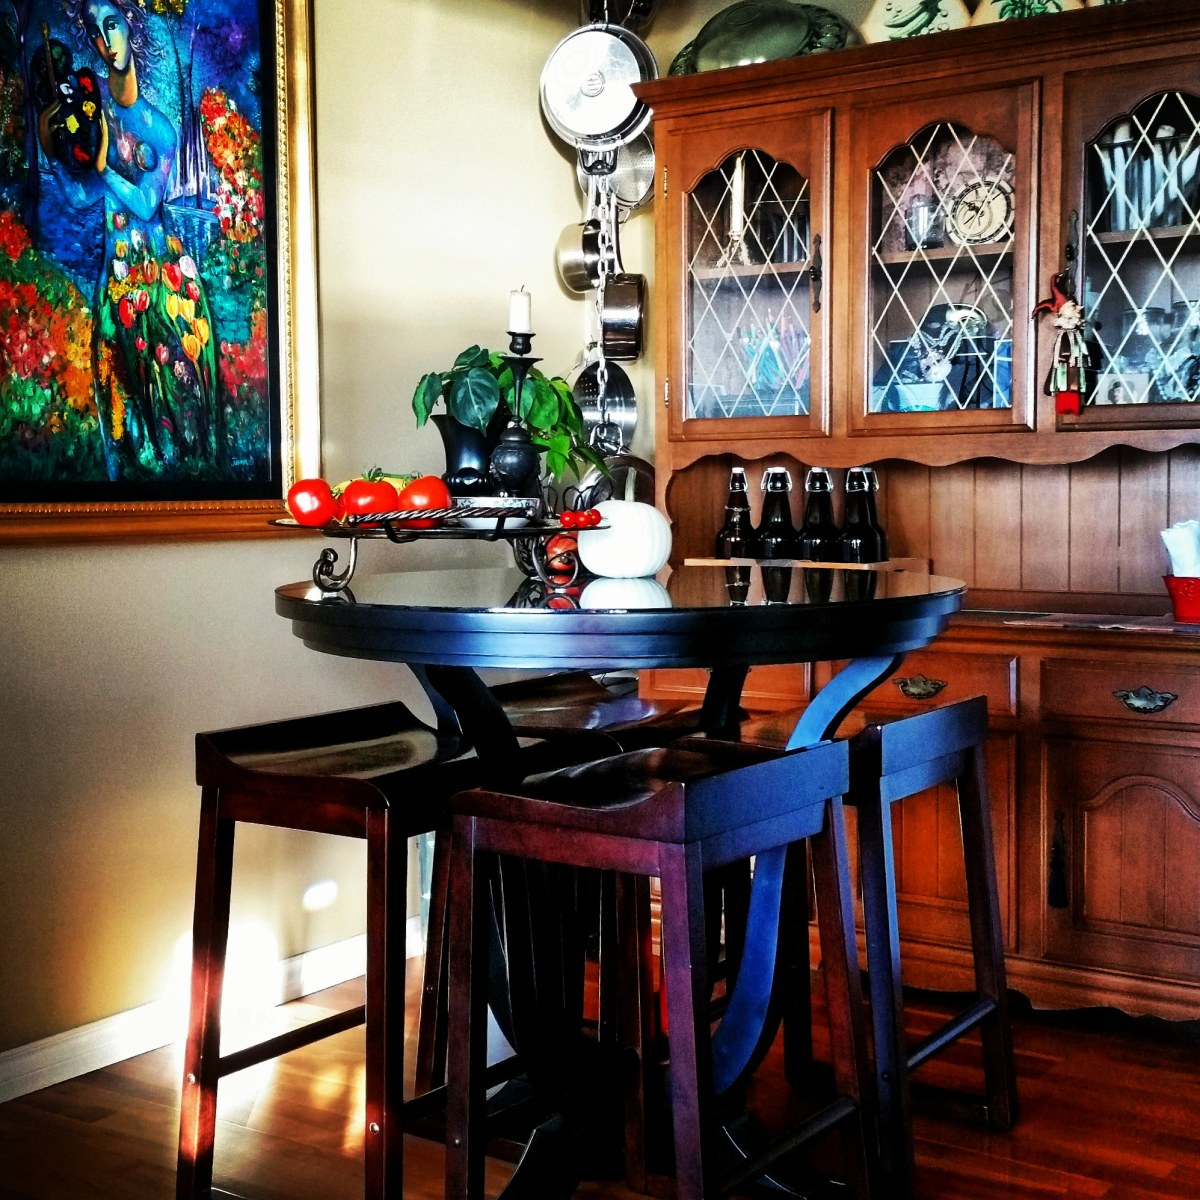 The Flat Surface Factor. The only table in our home, beautiful as it is, was a purchasing mistake.